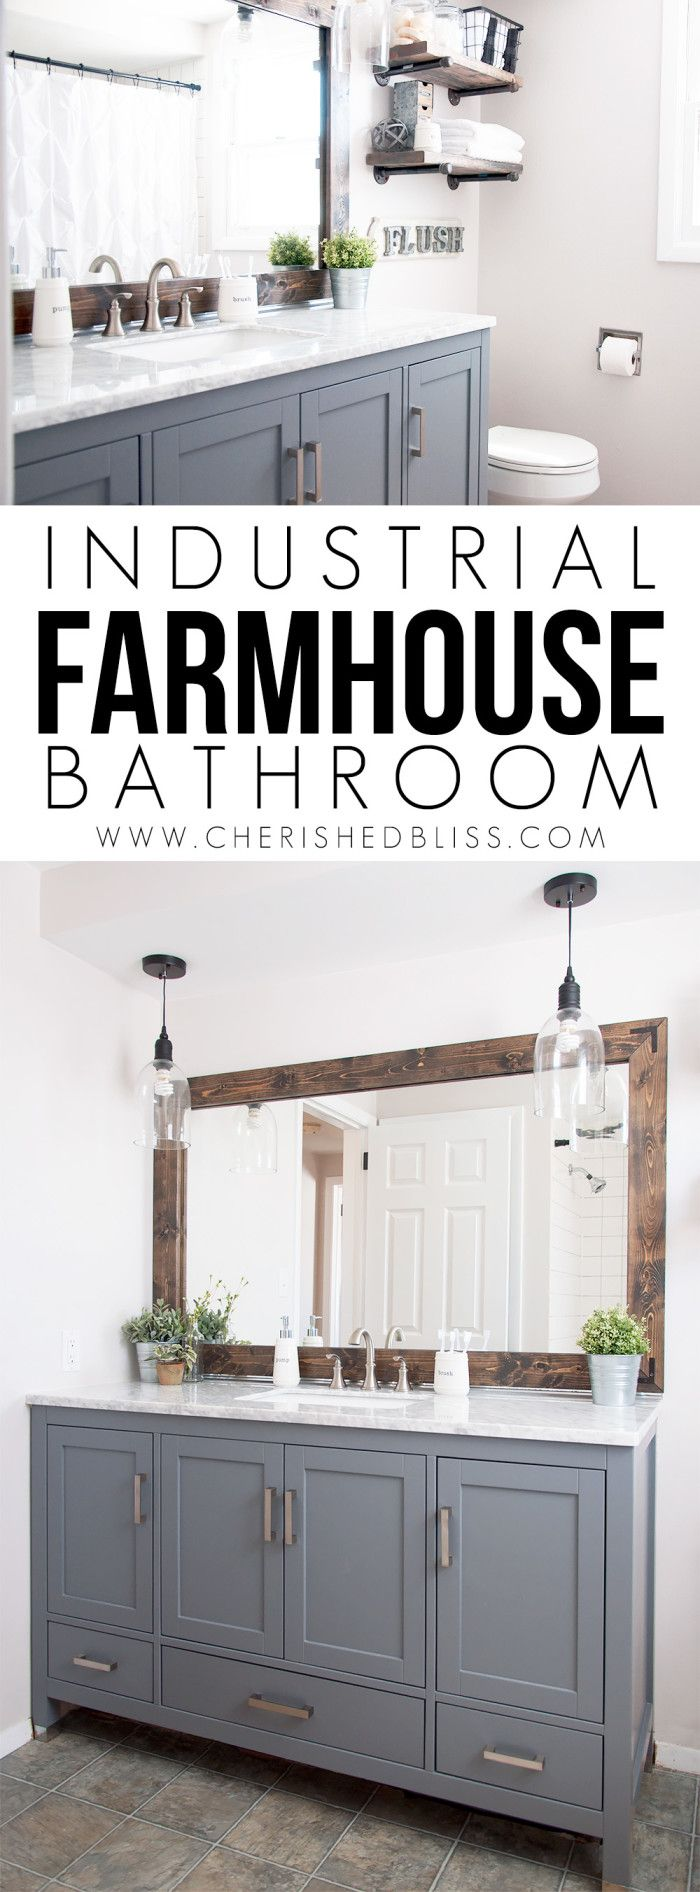 inexpensive bathroom lighting. industrial farmhouse bathroom reveal inexpensive lighting